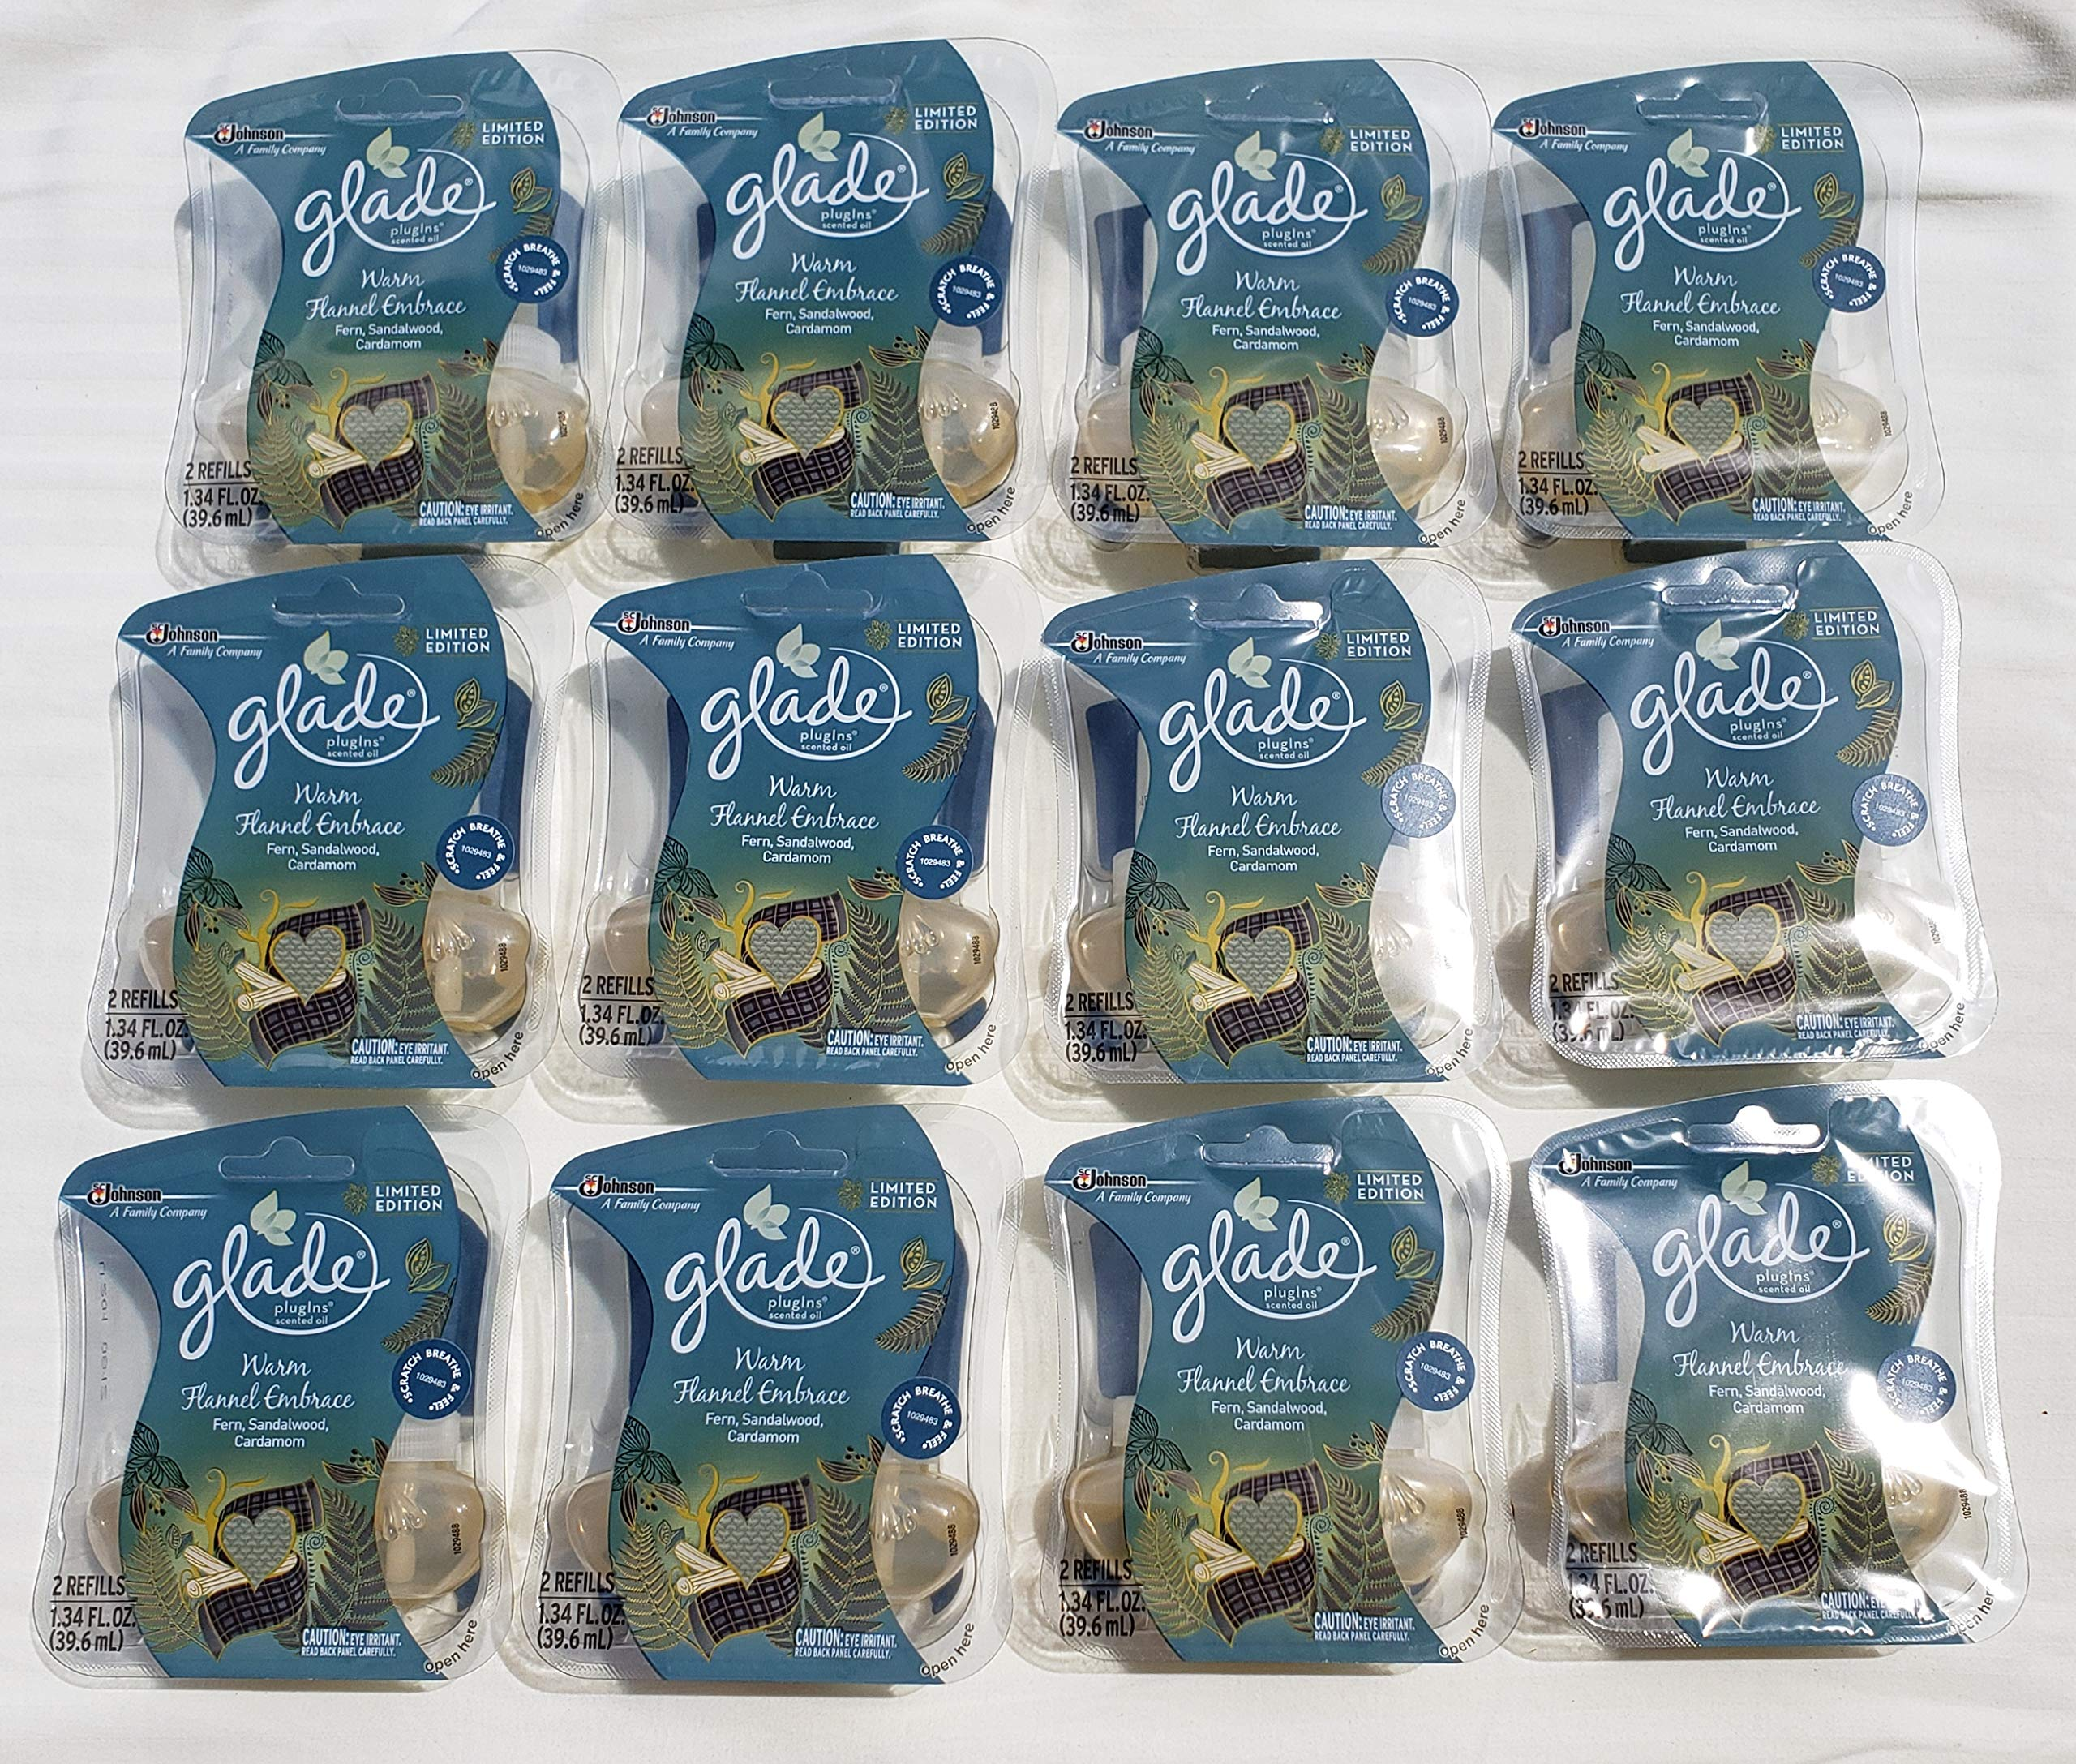 24 Glade PLUGINS Scented Oil Refills Warm Flannel Embrace Limited 12 Twin Packs